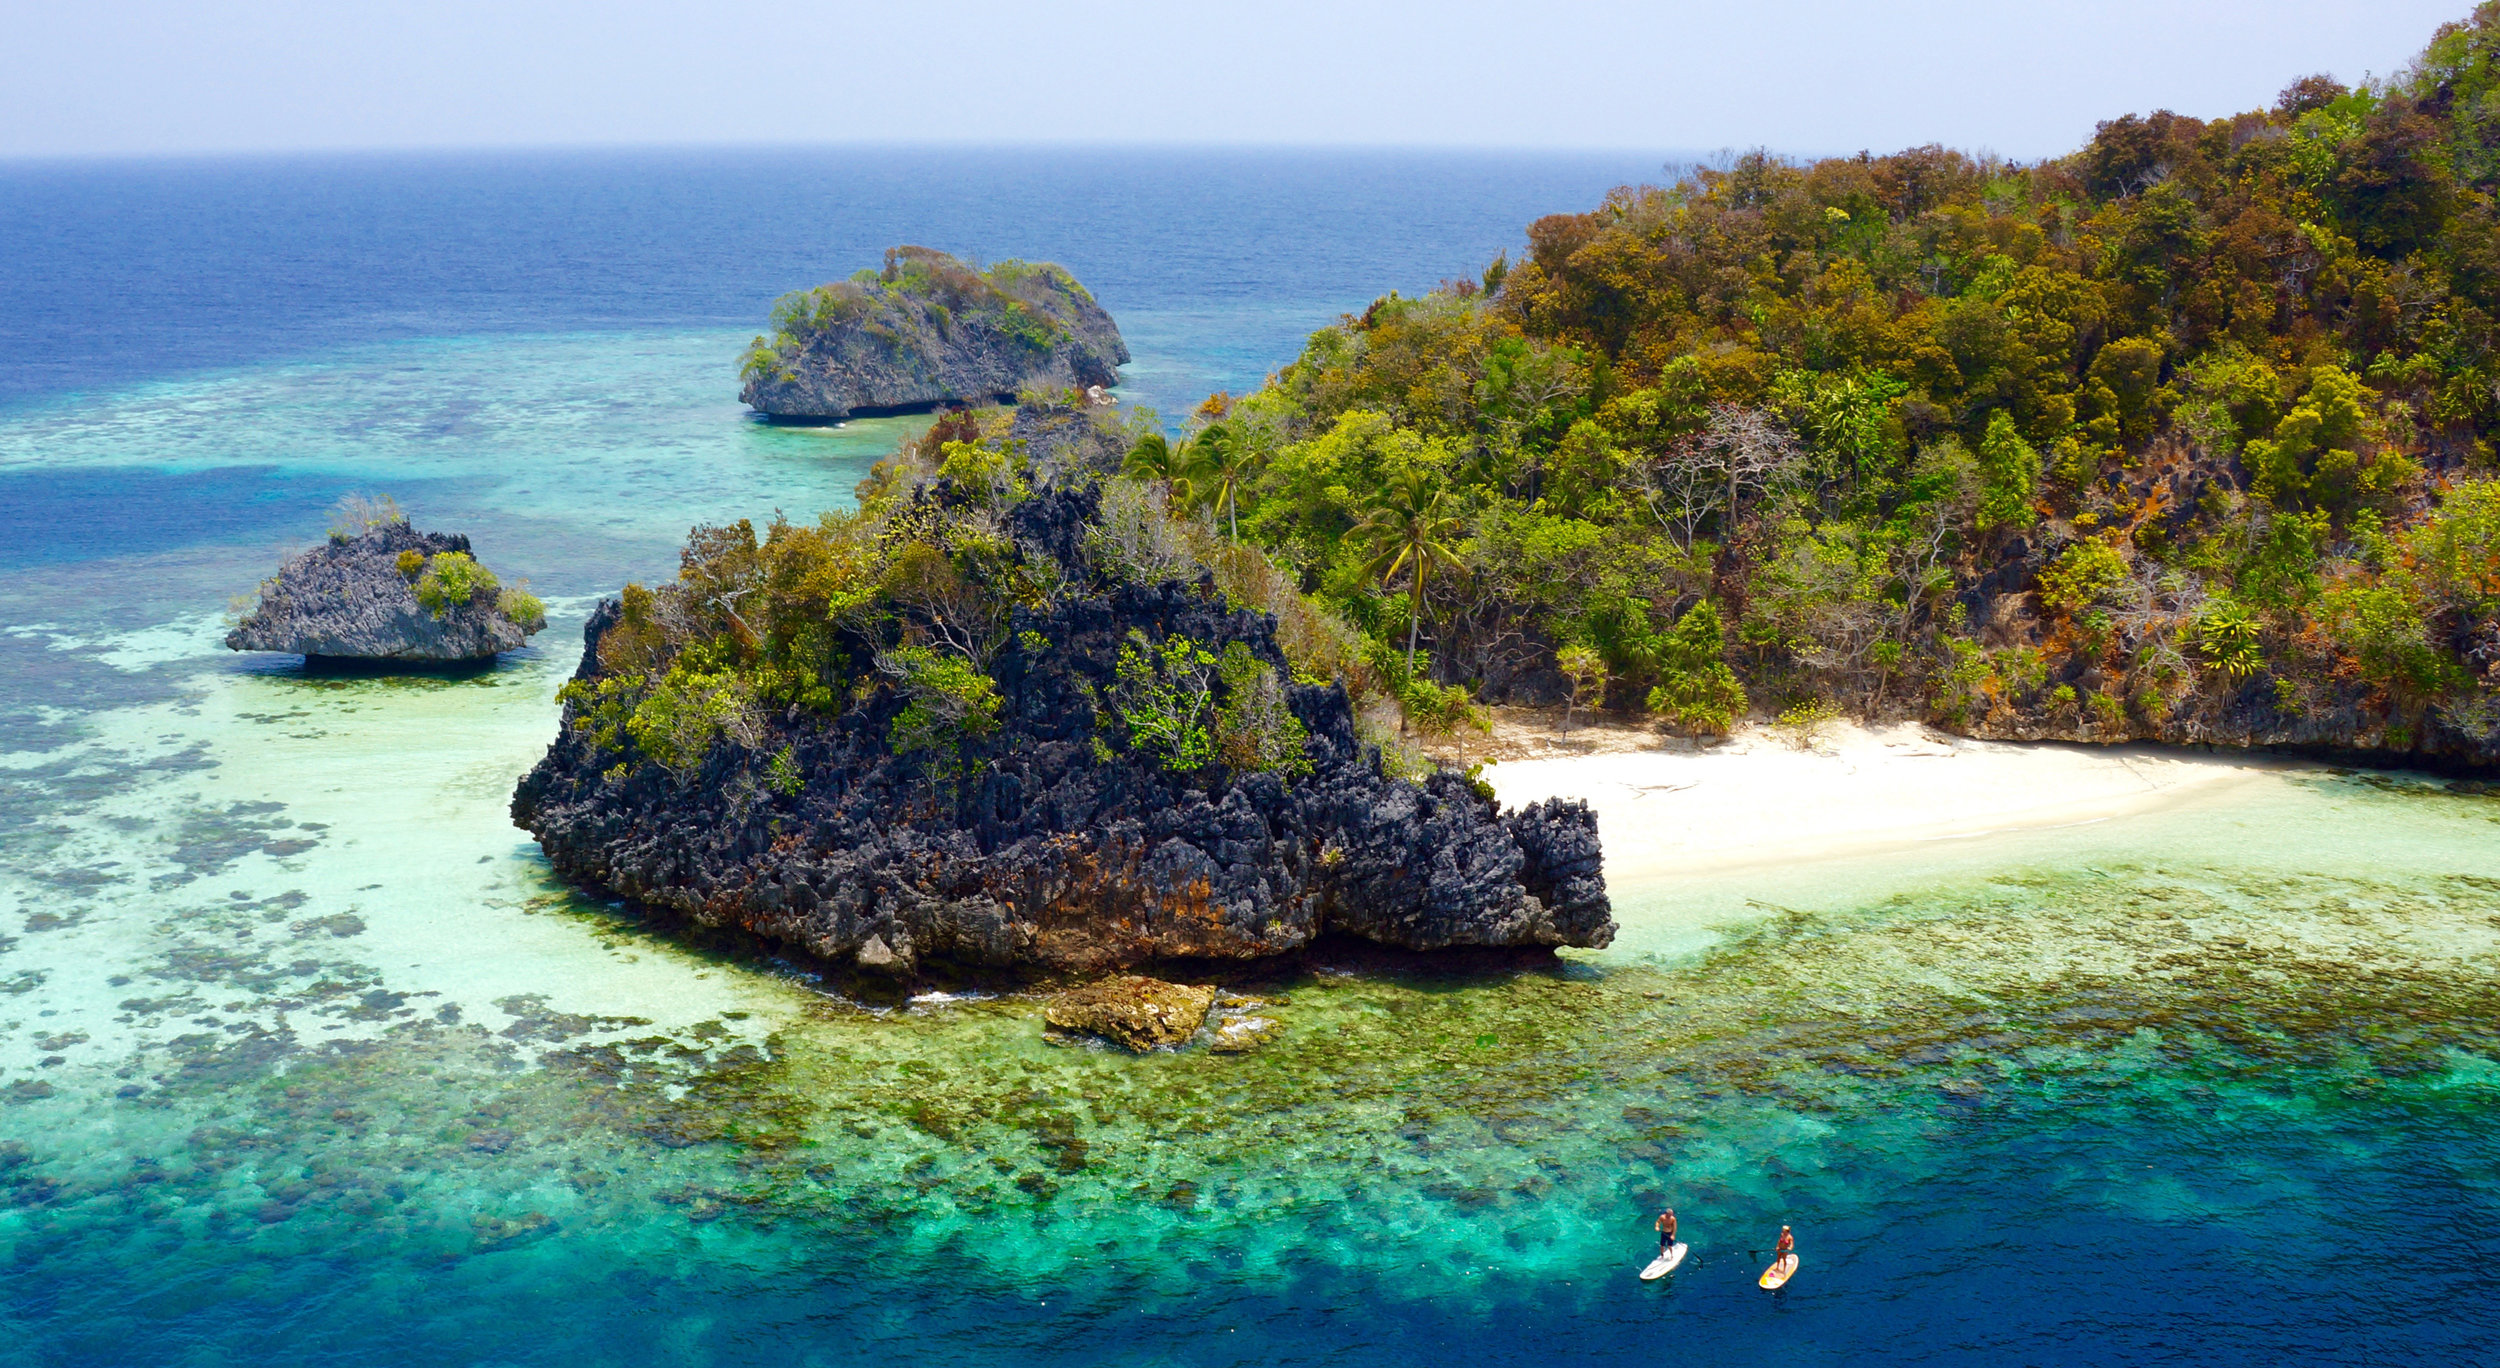 Stand up paddleboarding around a little island in Raja Ampat Indonesia, only accessible by private boat.